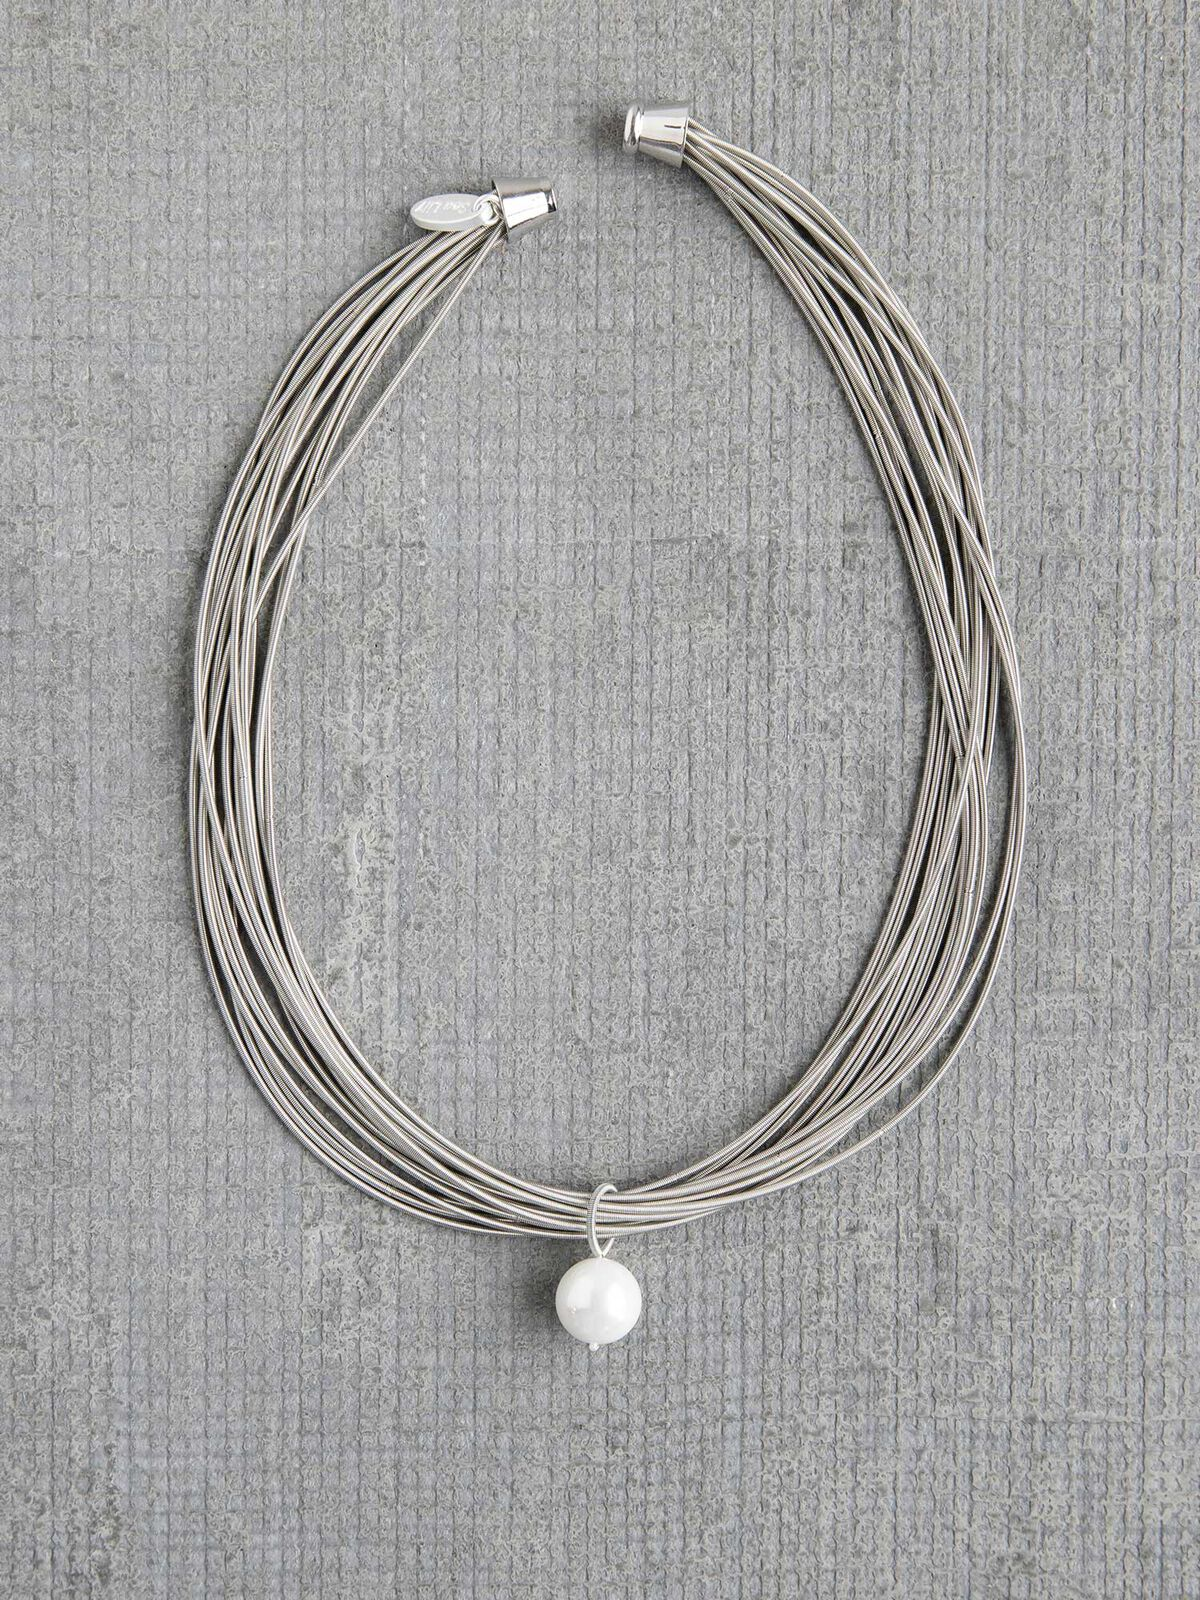 Sea Lily Piano Wire Necklace with Pearl